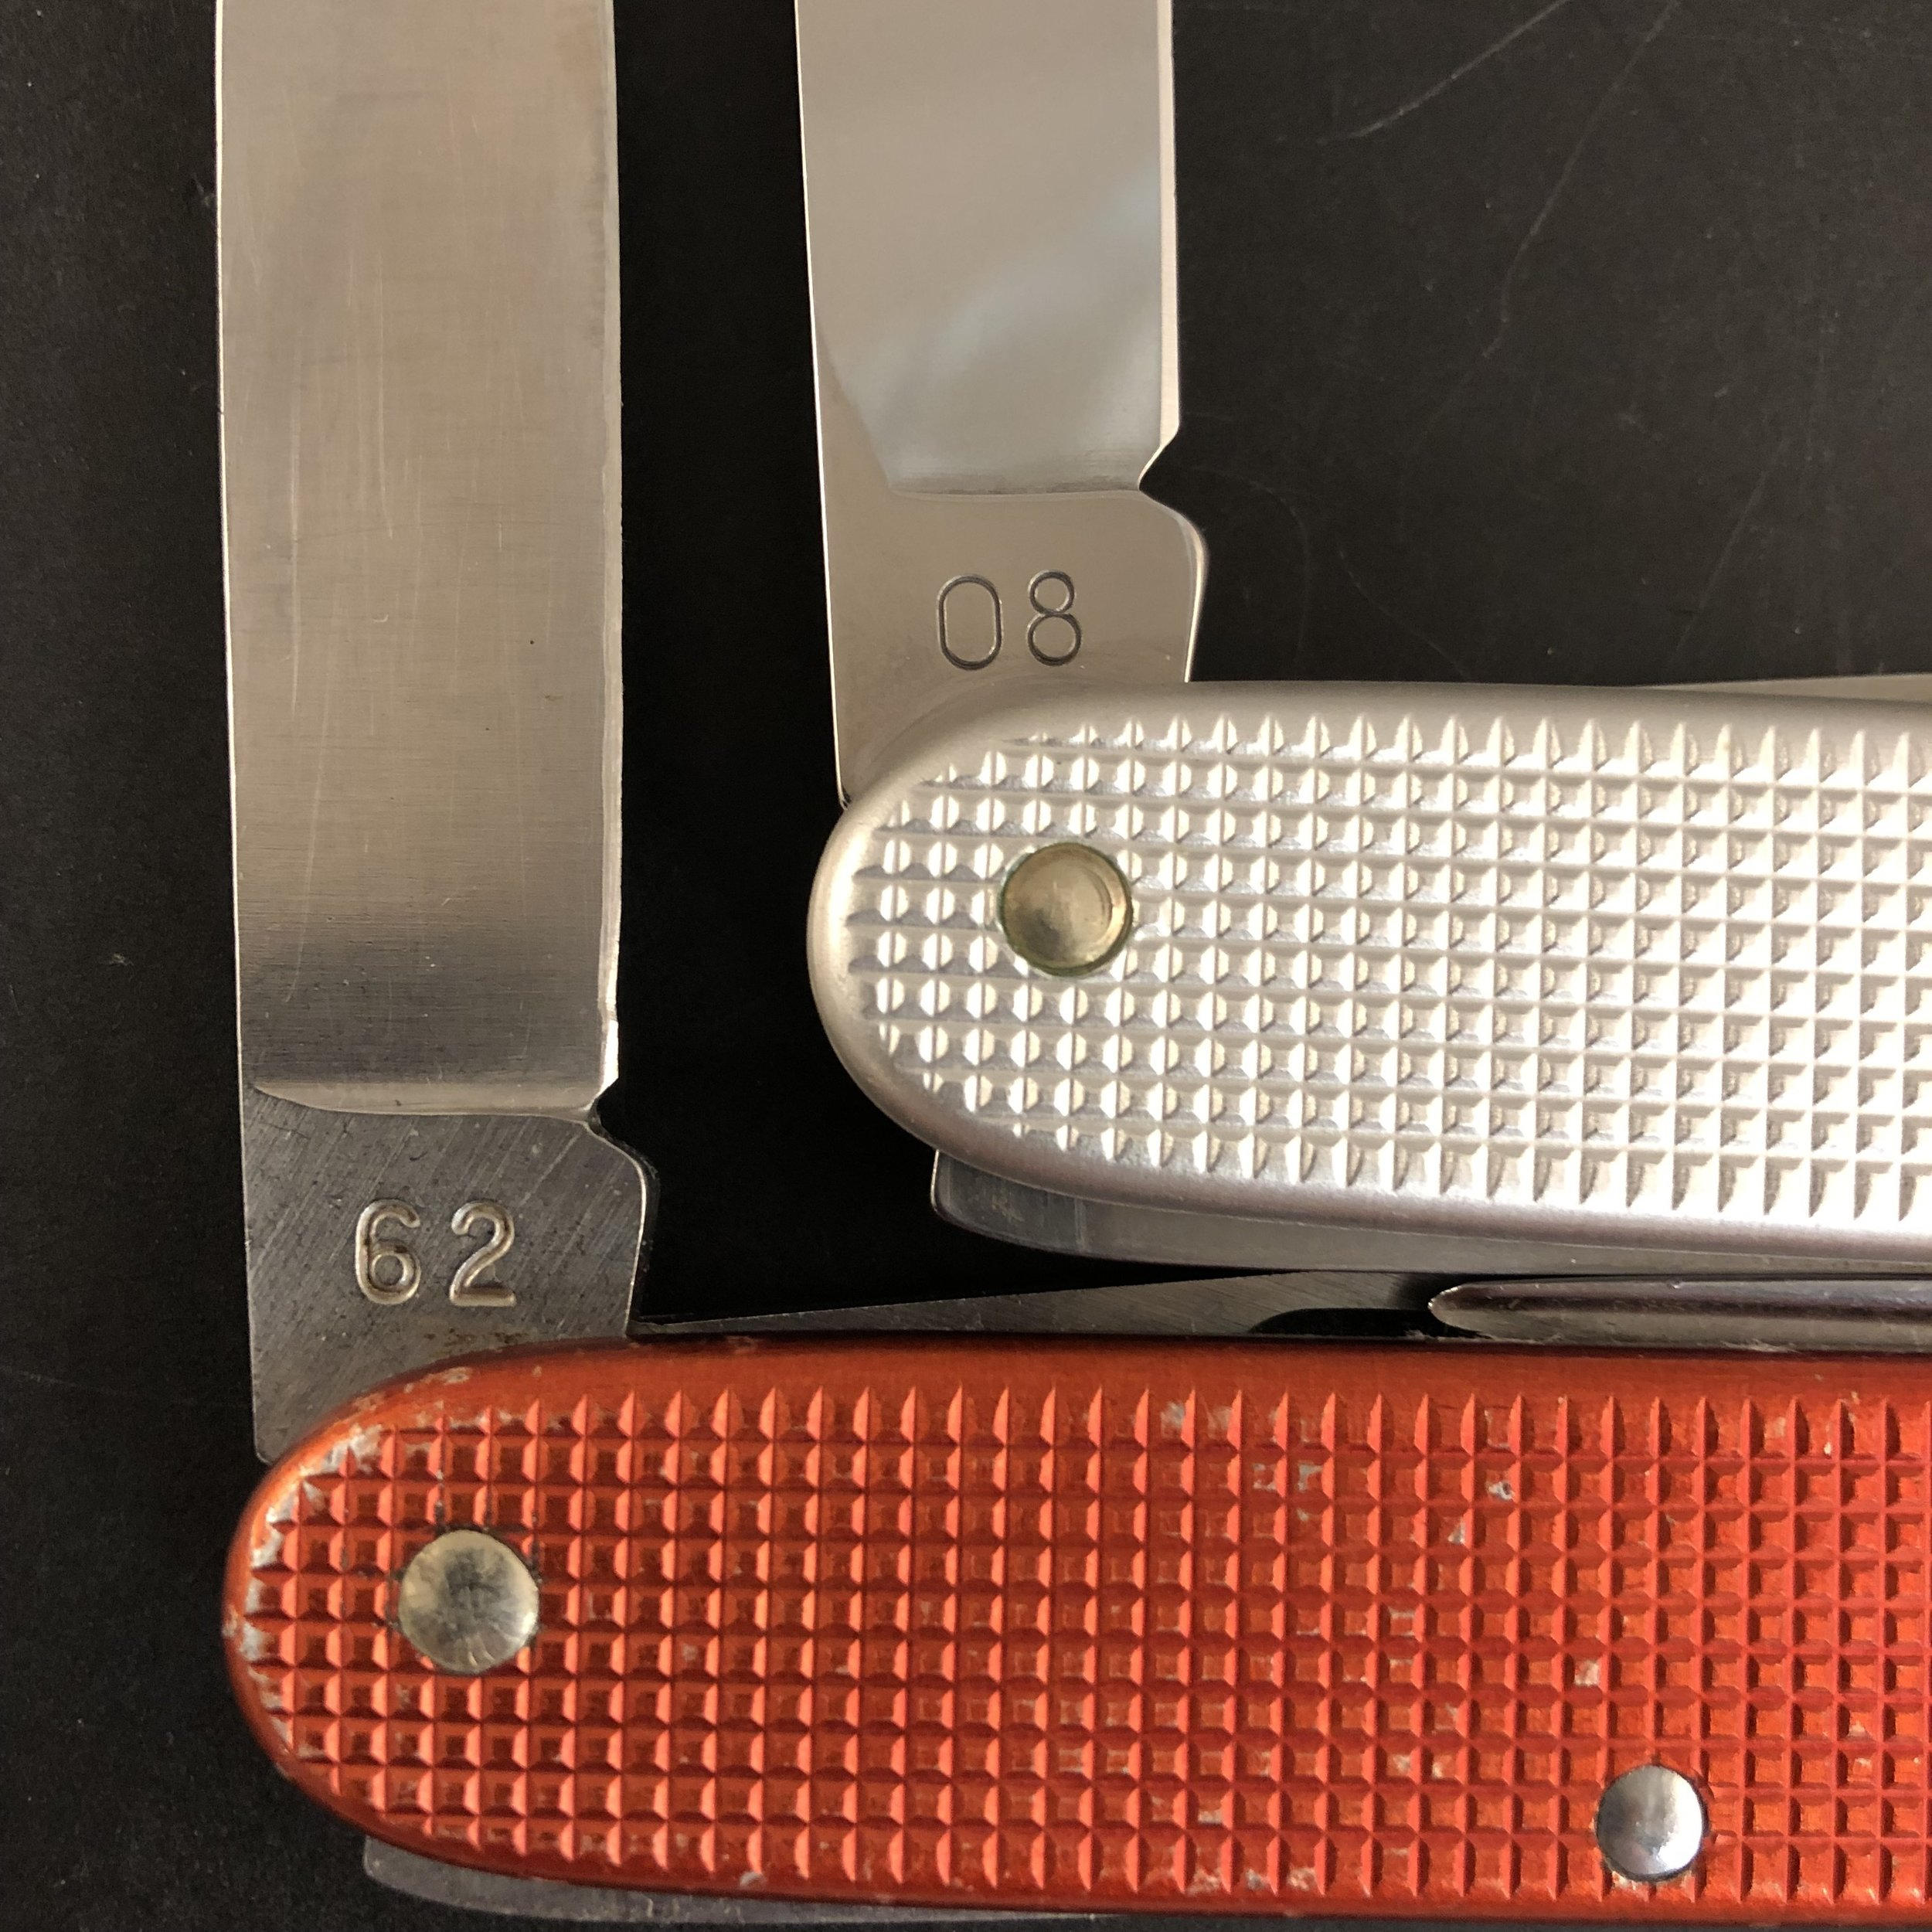 Bookended Soldiers from 1962 to 2008, first and last years of production for Victorinox.